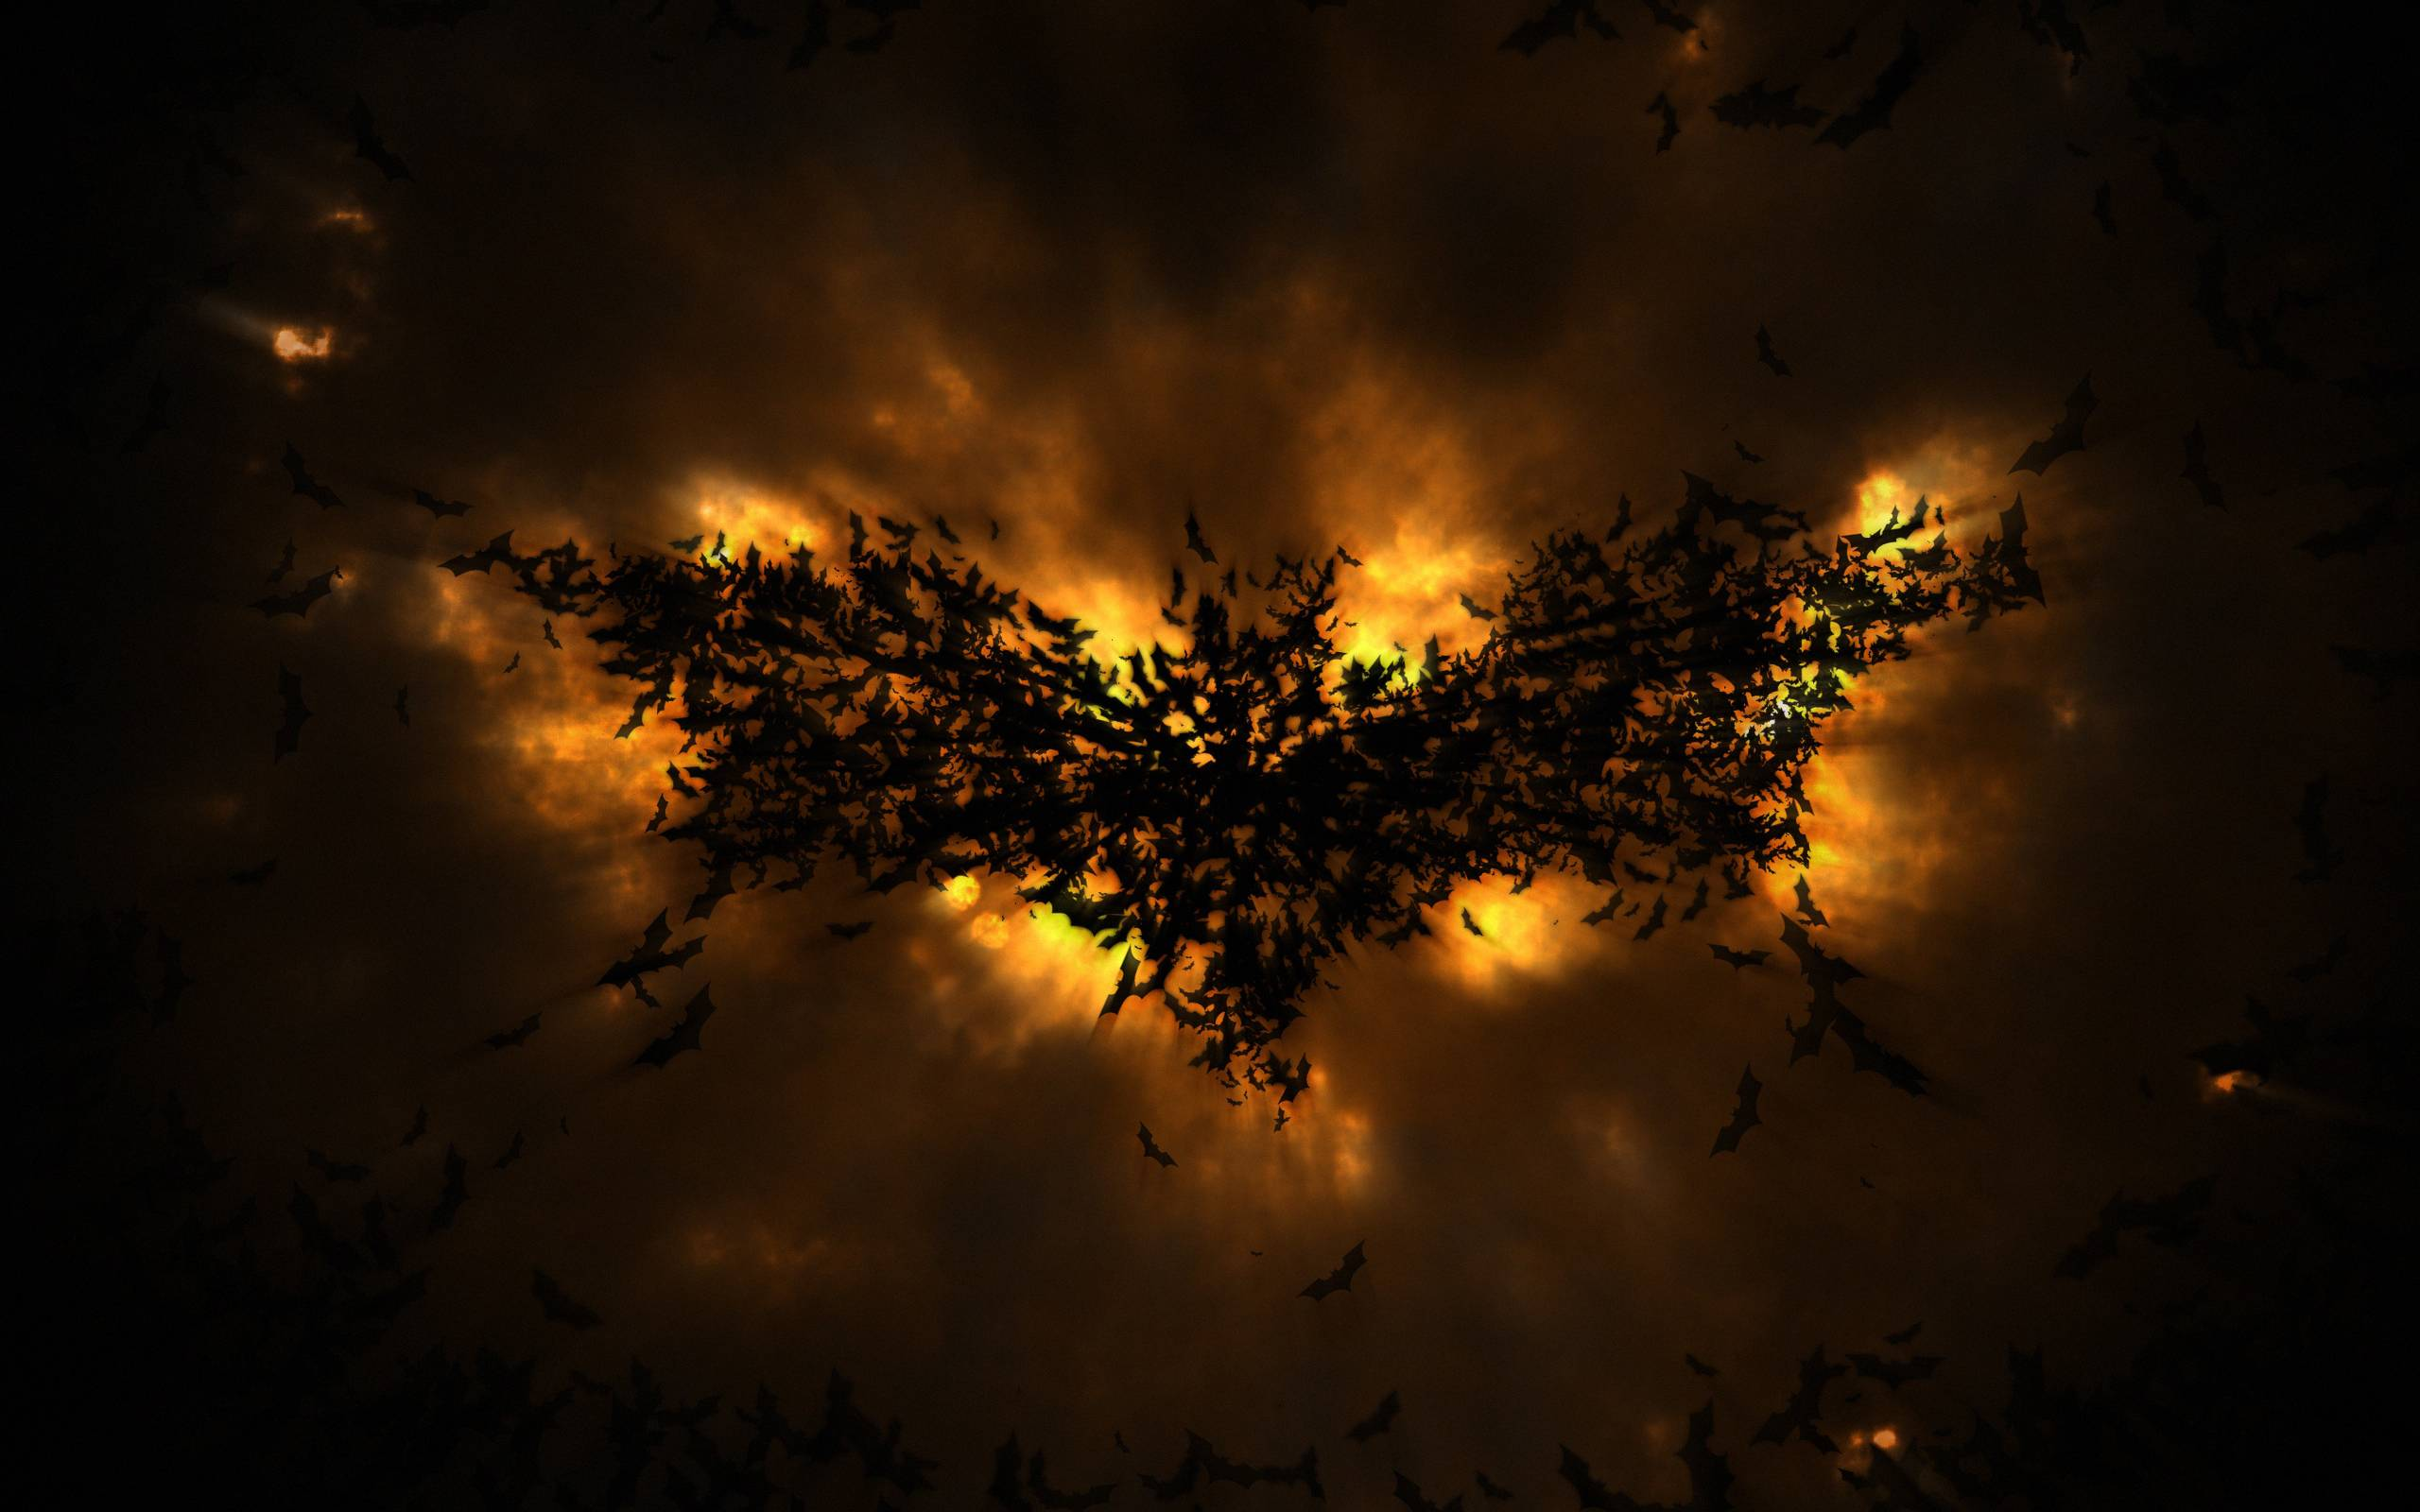 The Dark Knight Rises Batman Movie Abstract Logo Wallpapers